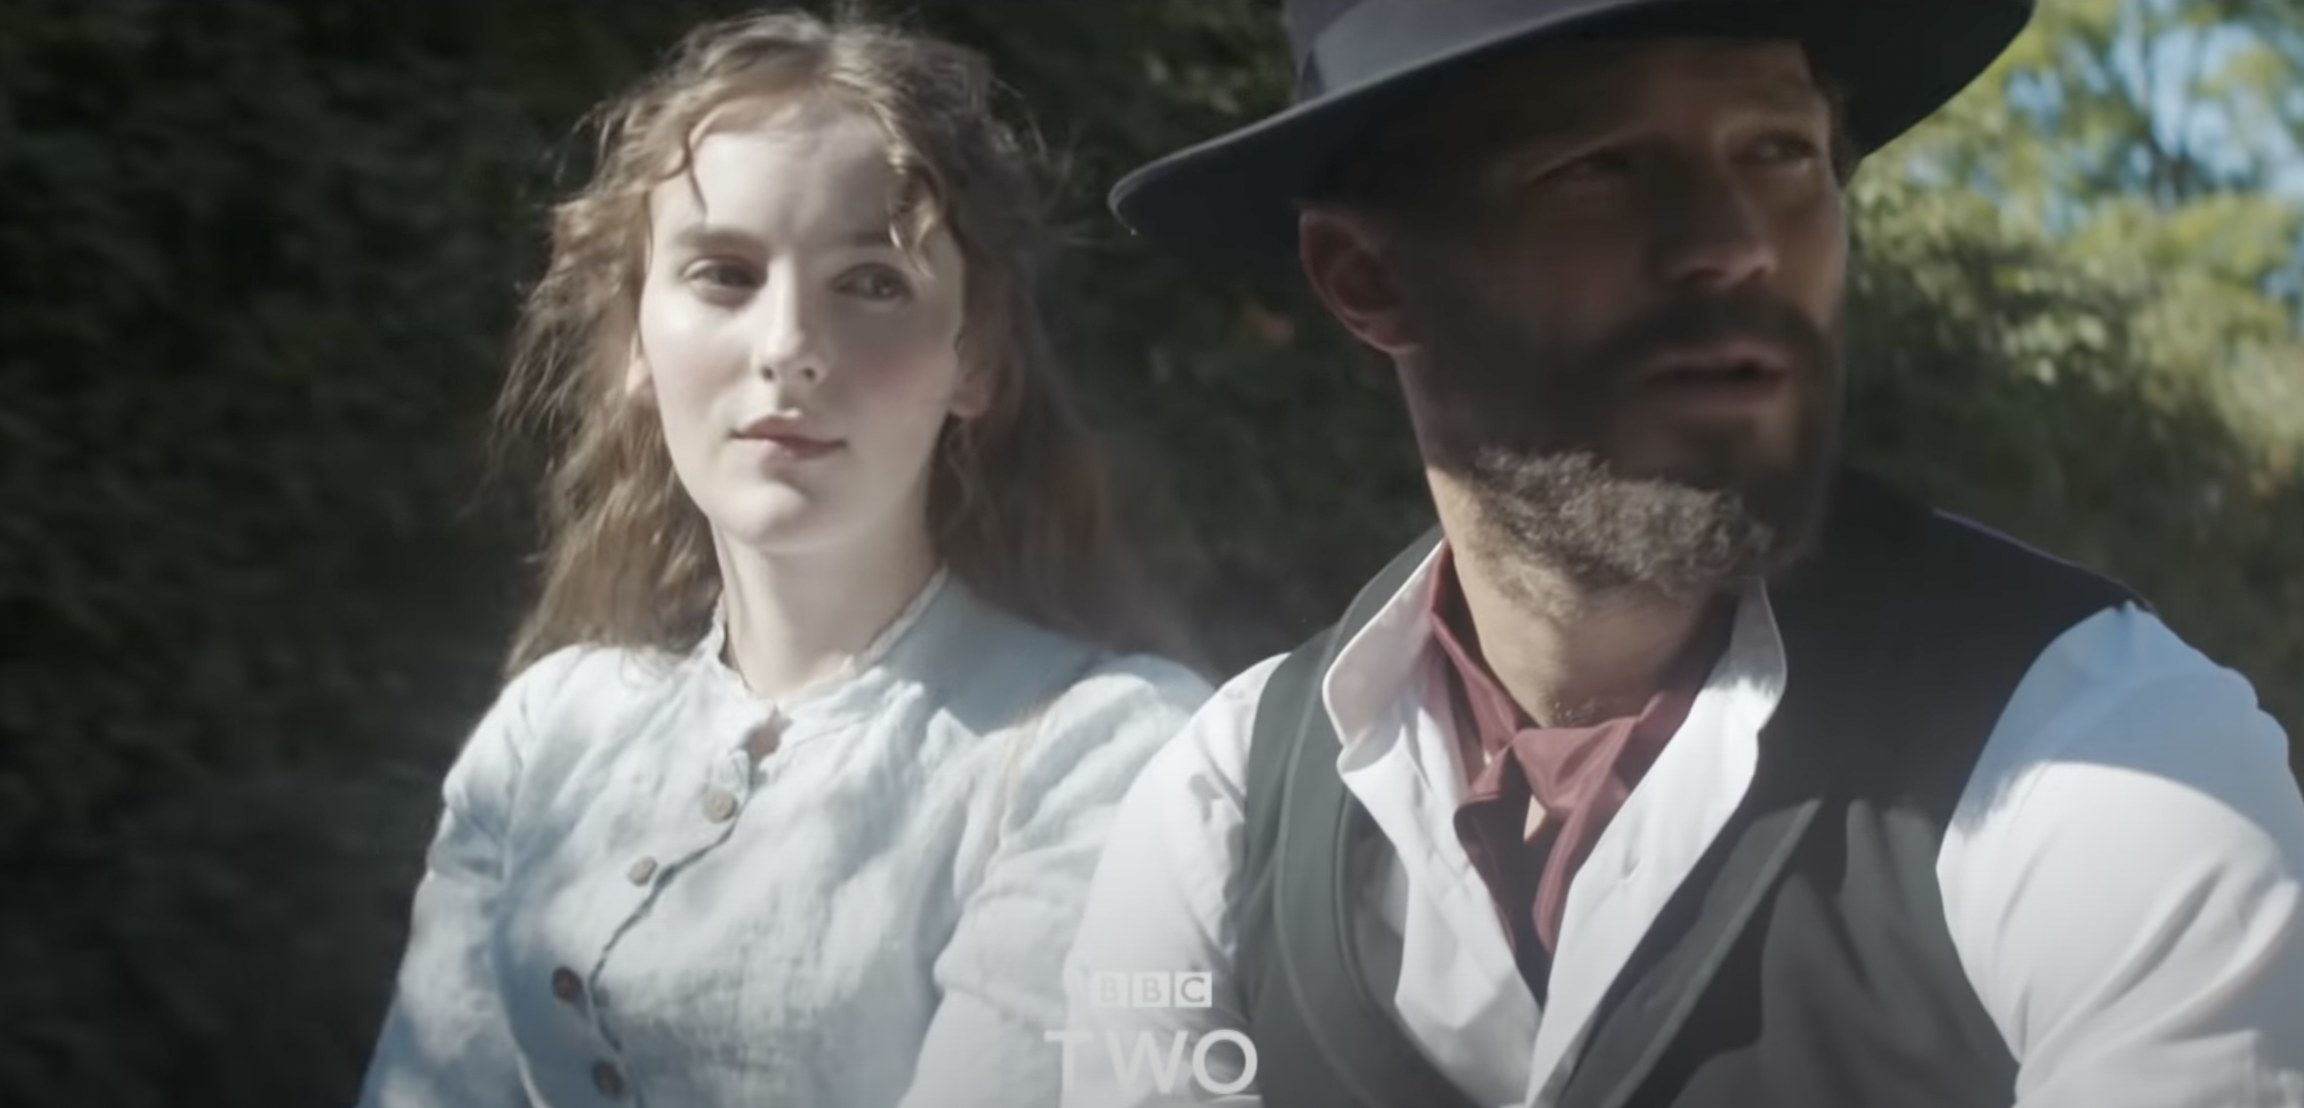 Ann Skelly and Jamie Dornan in Death and Nightingales in a carriage